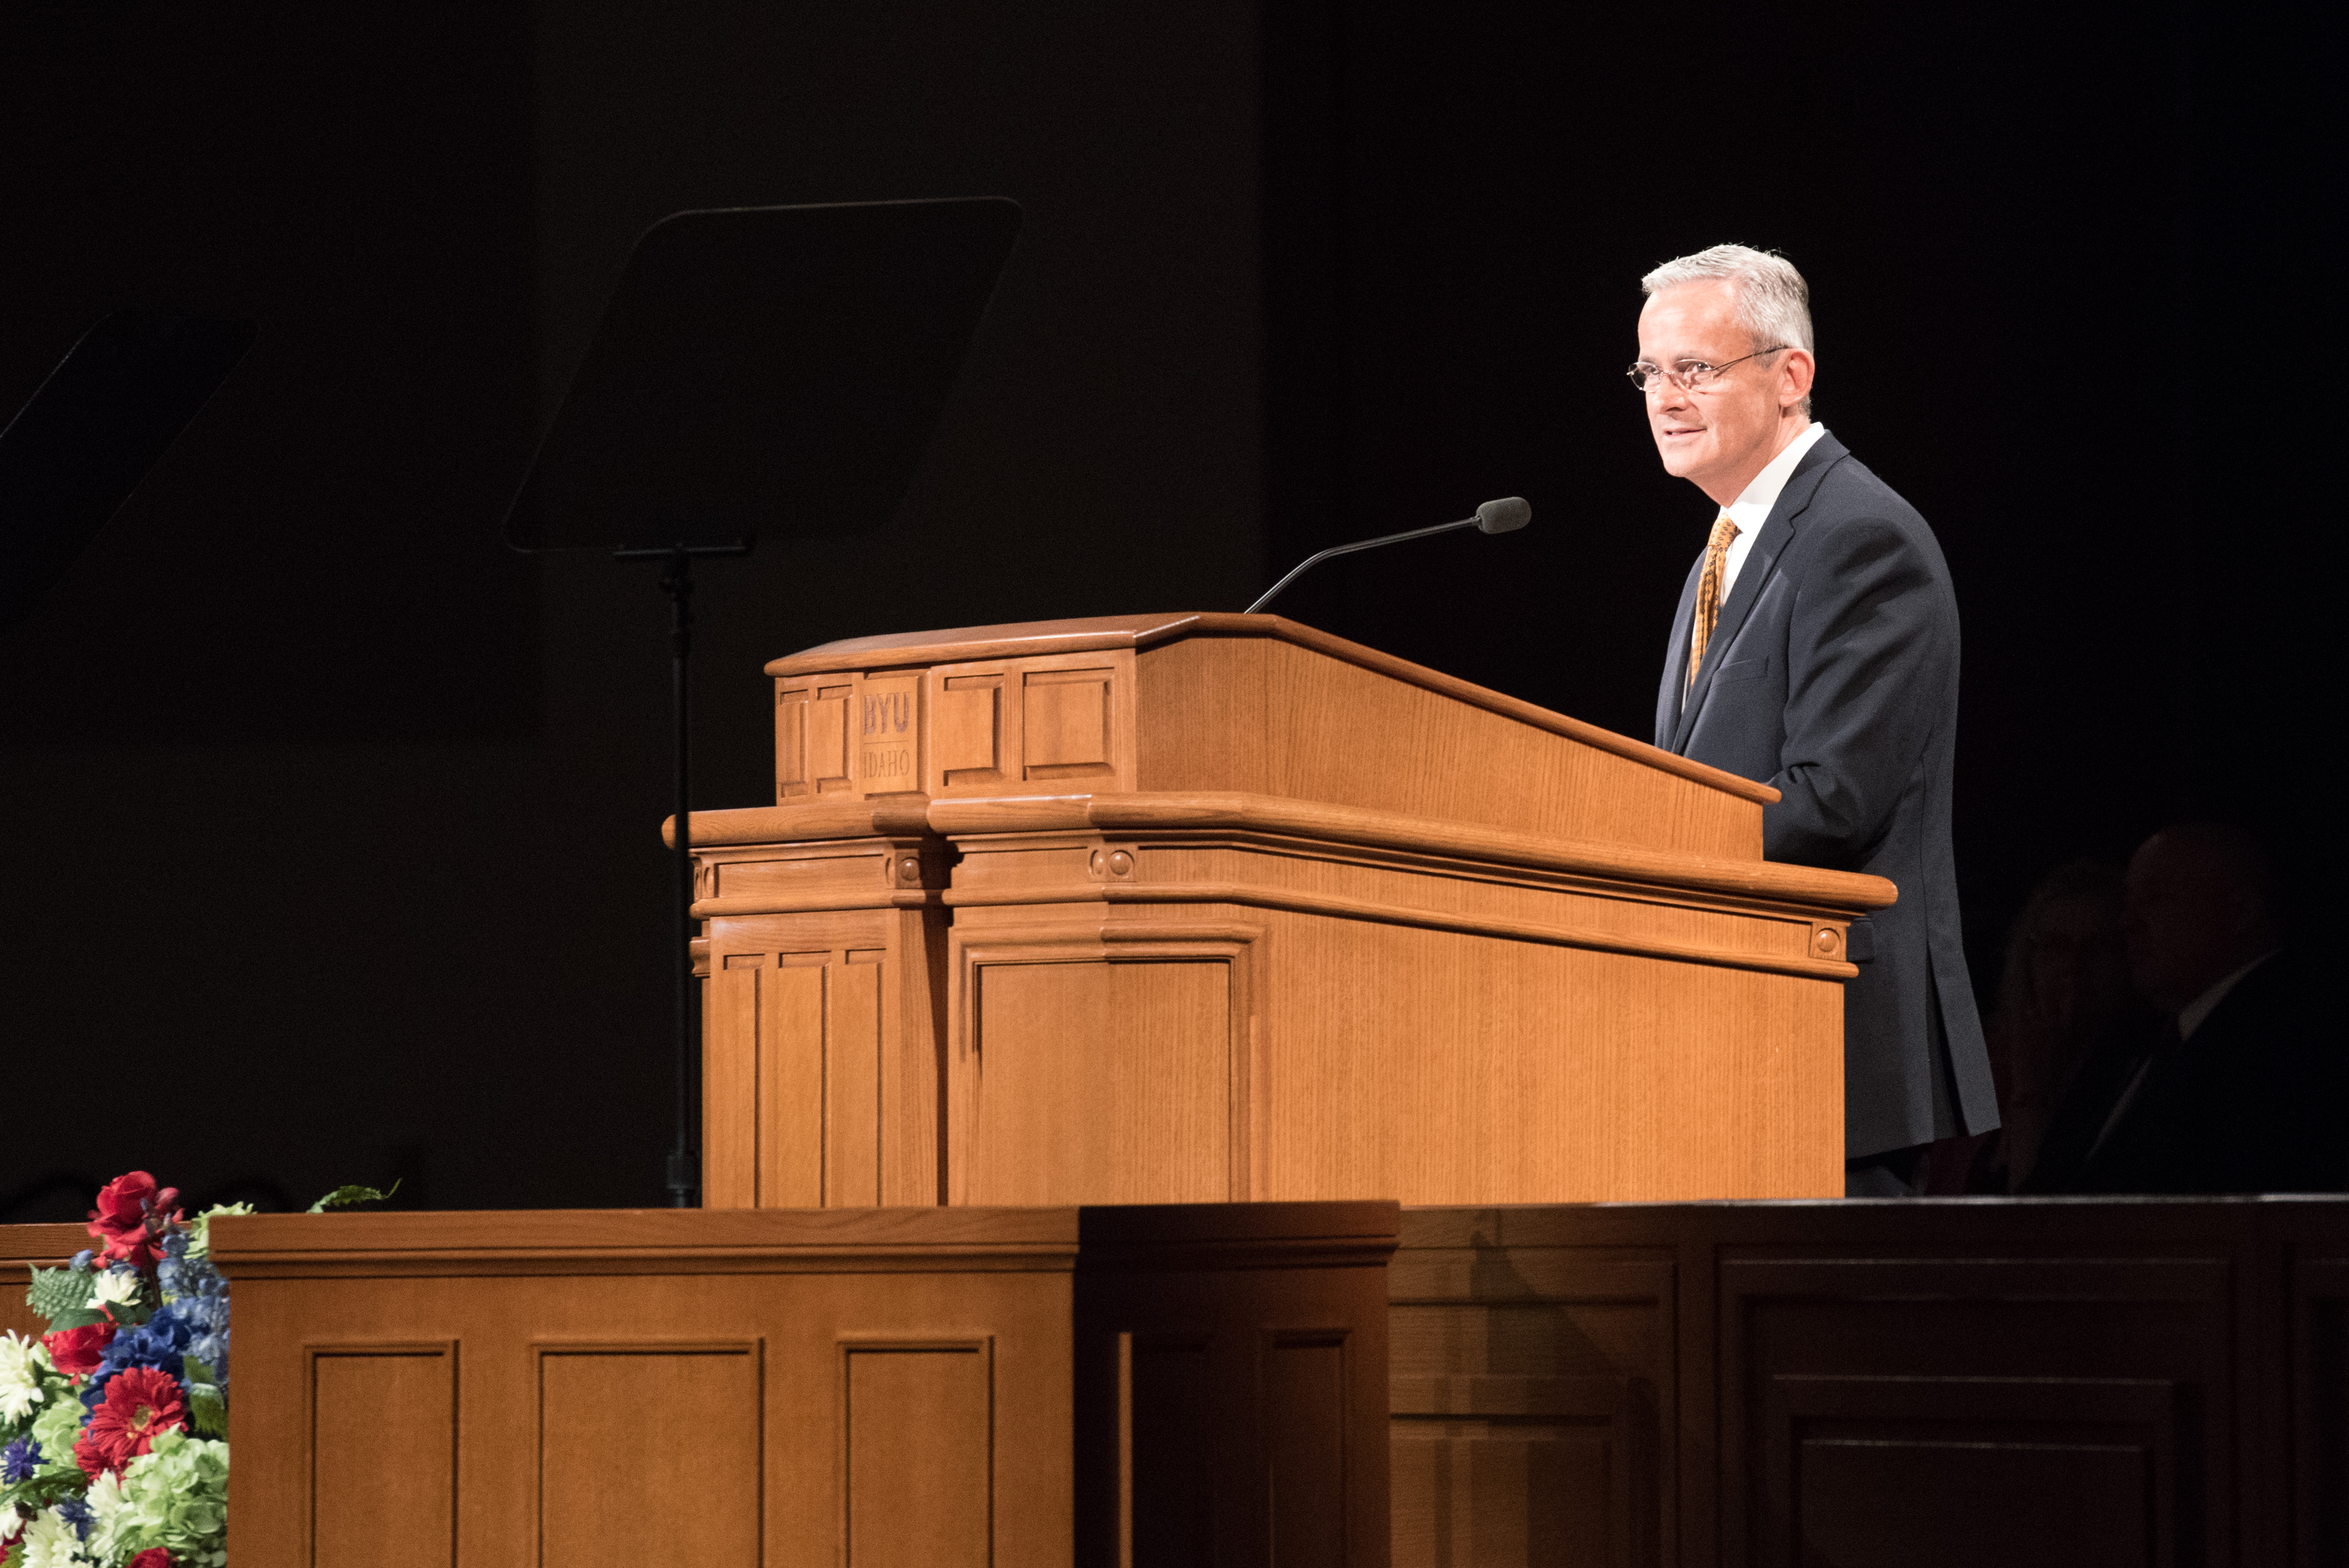 Elder Patrick Kearon of the Presidency of the Seventy speaks during the Worldwide Devotional for Young Adults held in the BYU-Idaho Center in Rexburg, Idaho, on May 6, 2018.